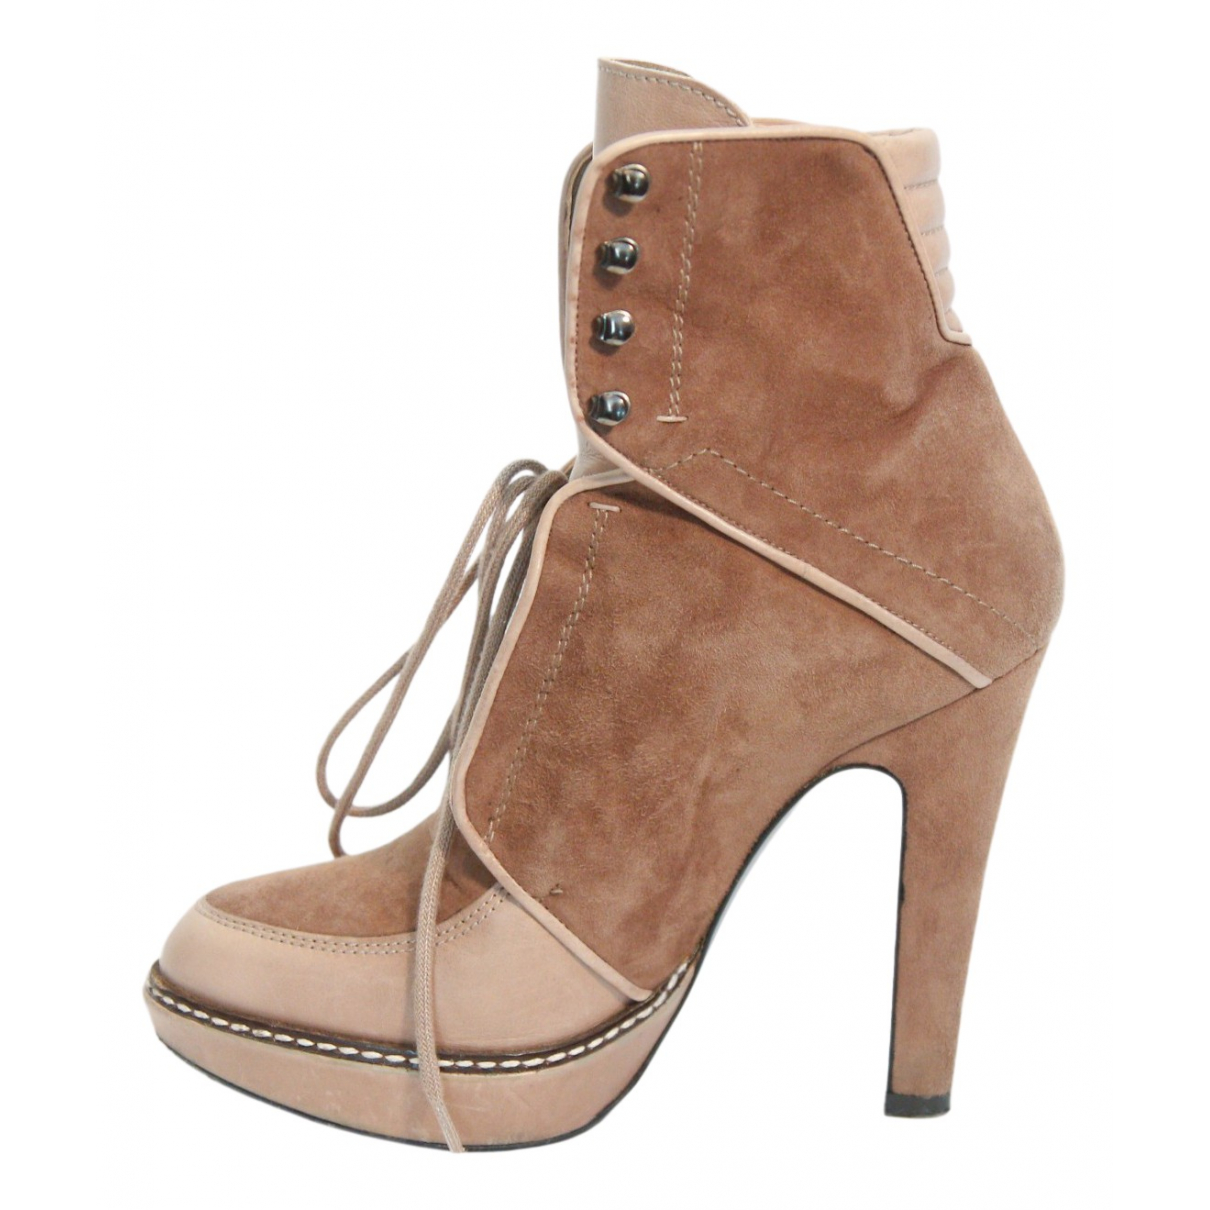 Barbara Bui N Beige Suede Ankle boots for Women 36 EU